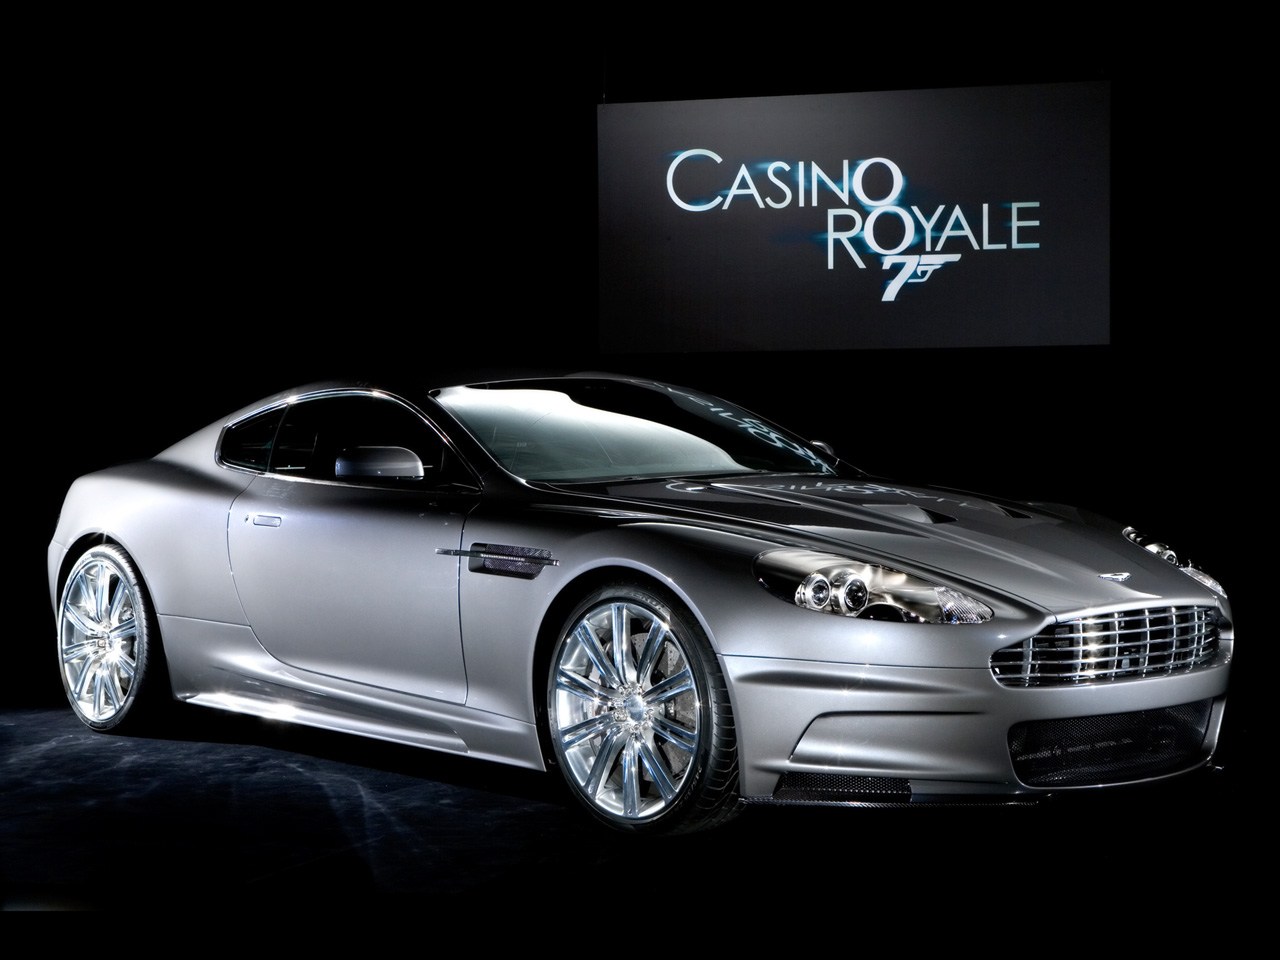 You are viewing the Aston Martin wallpaper named